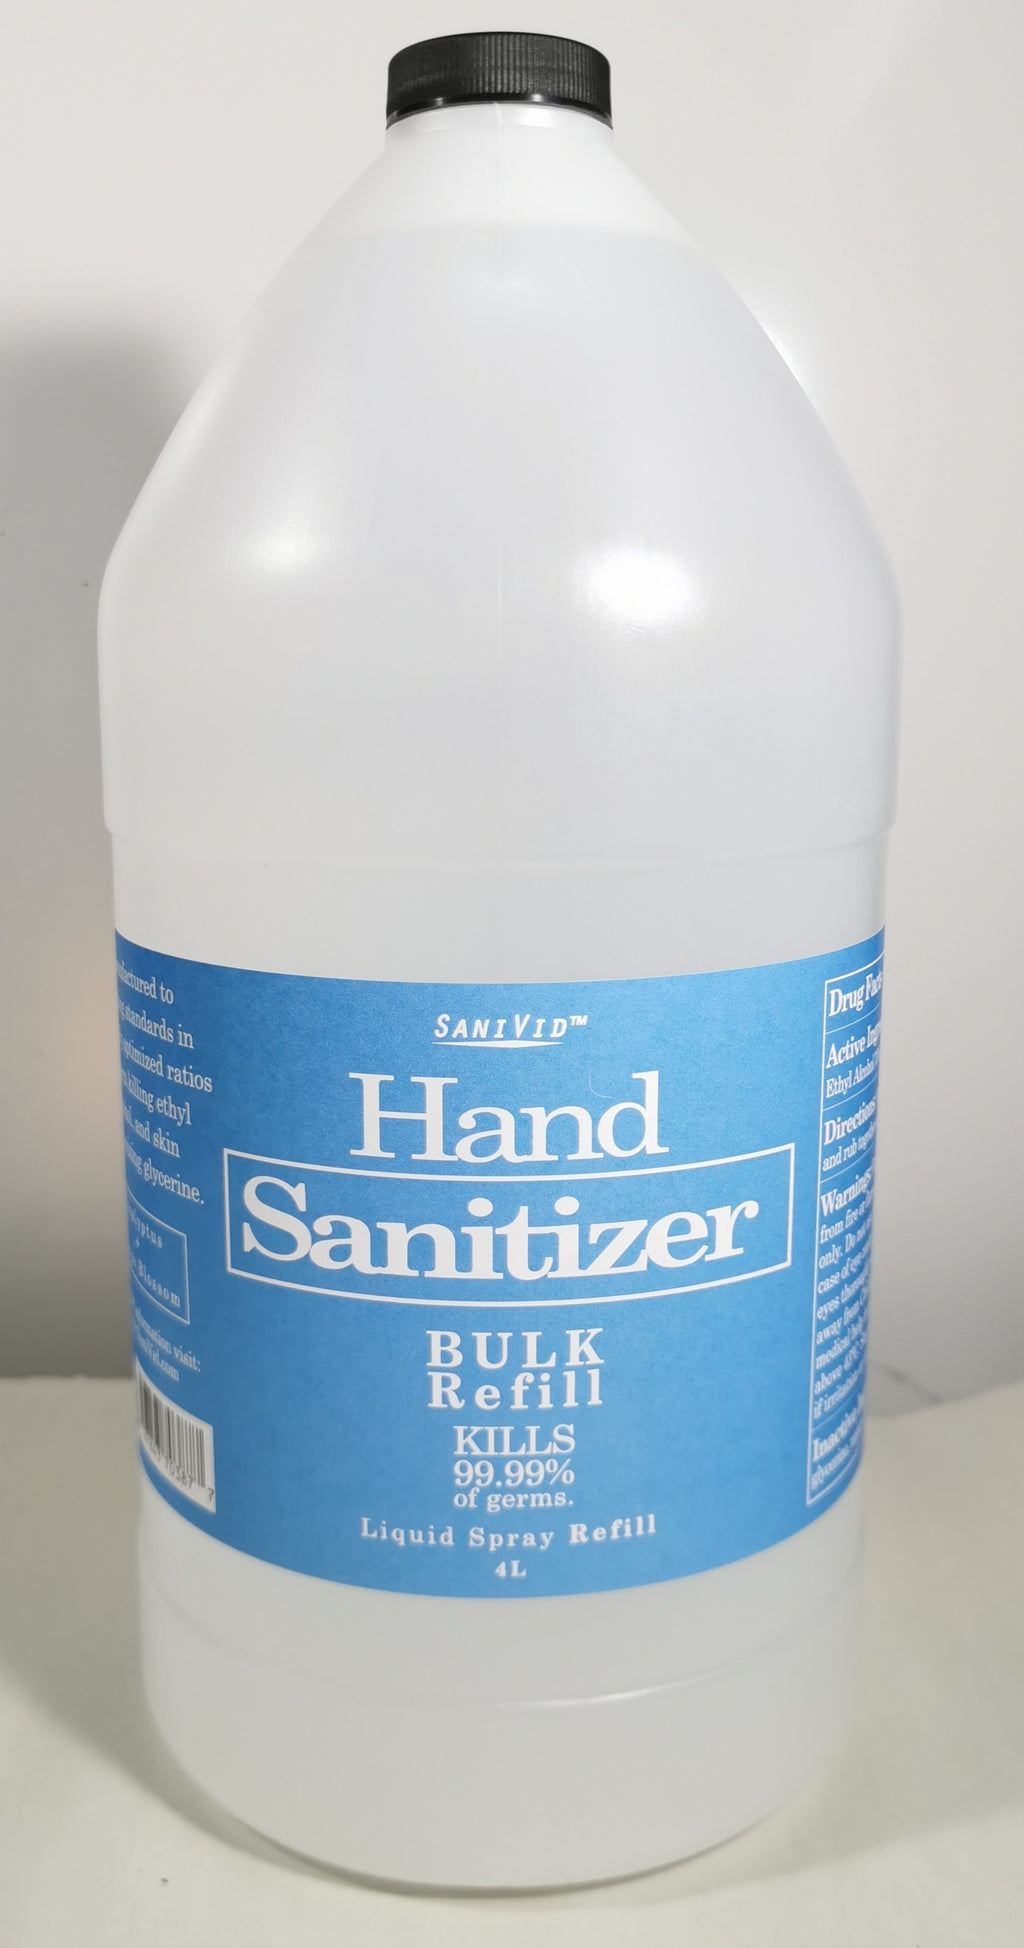 Hand Sanitizer 4L Refill